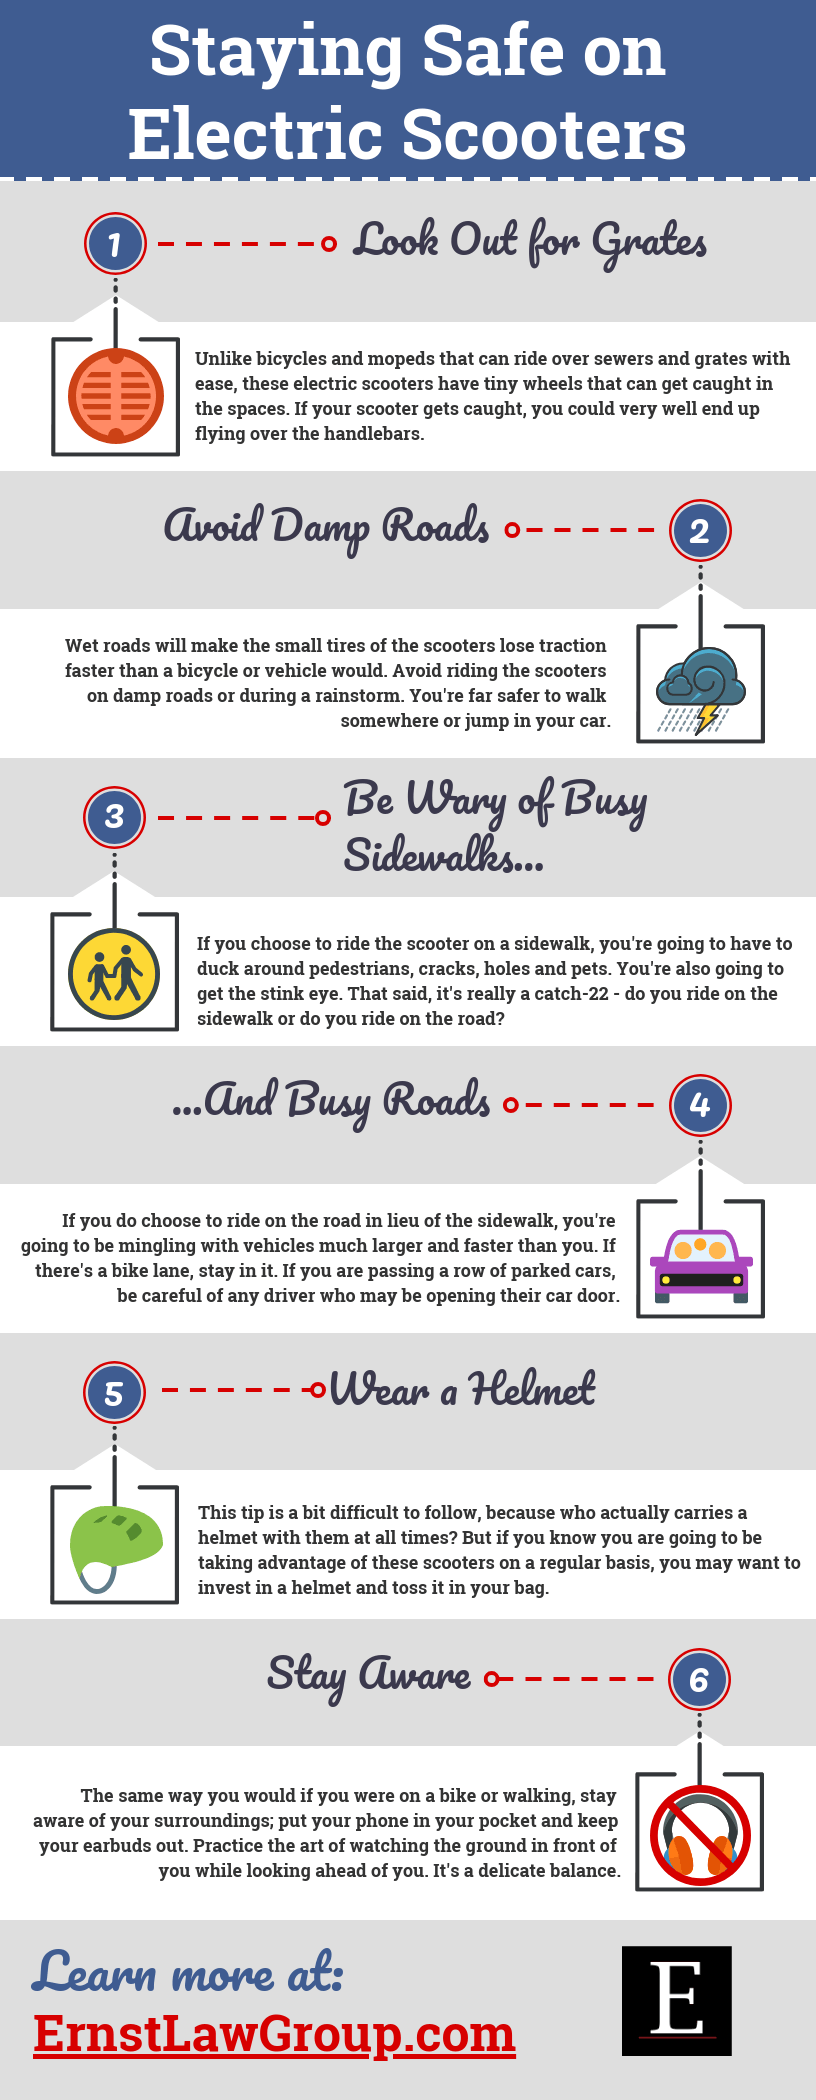 Staying Safe on Electric Scooters infographic